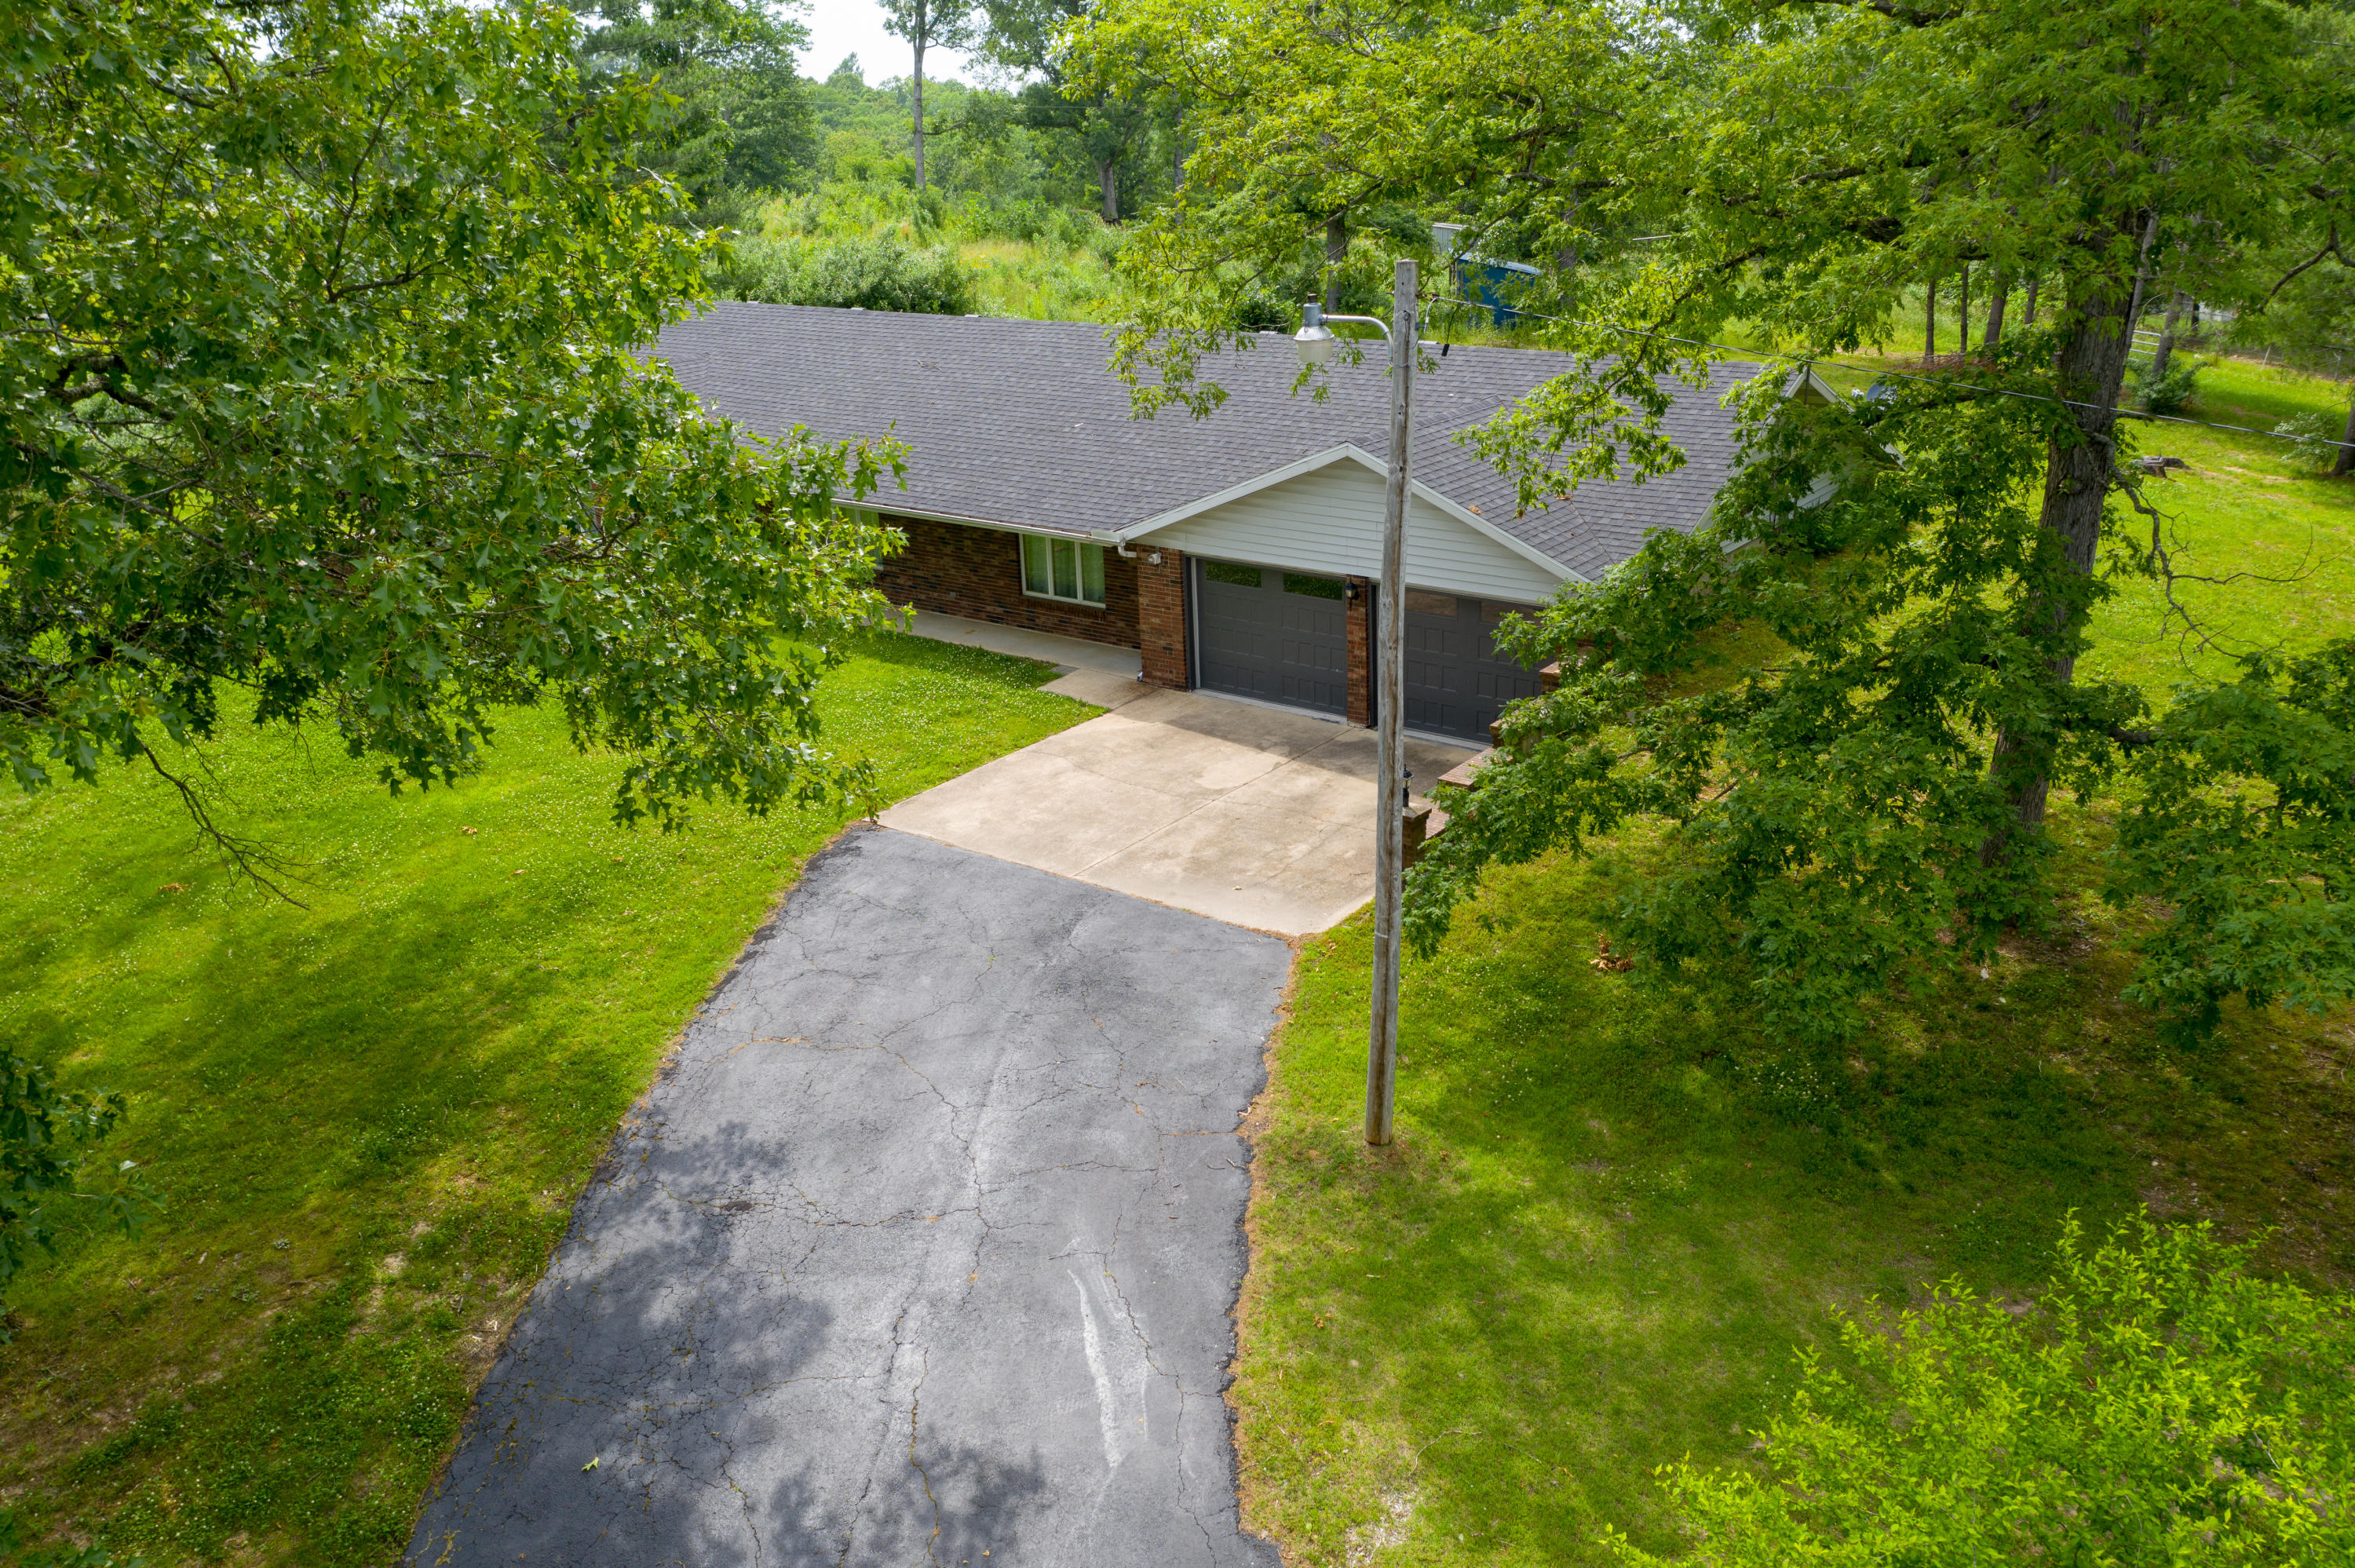 20805 West State Hwy Ava, MO 65608